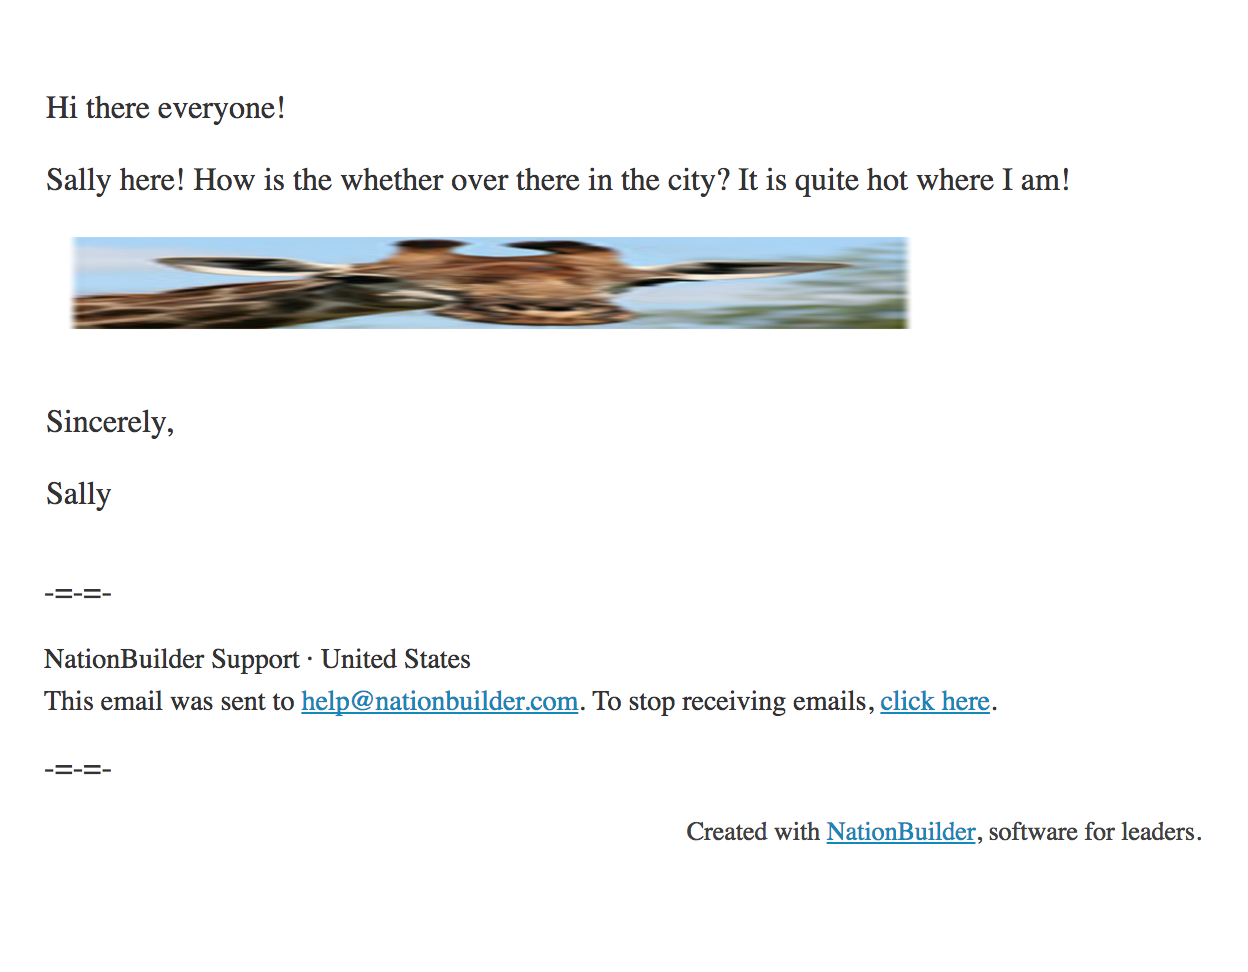 Bad_email.png